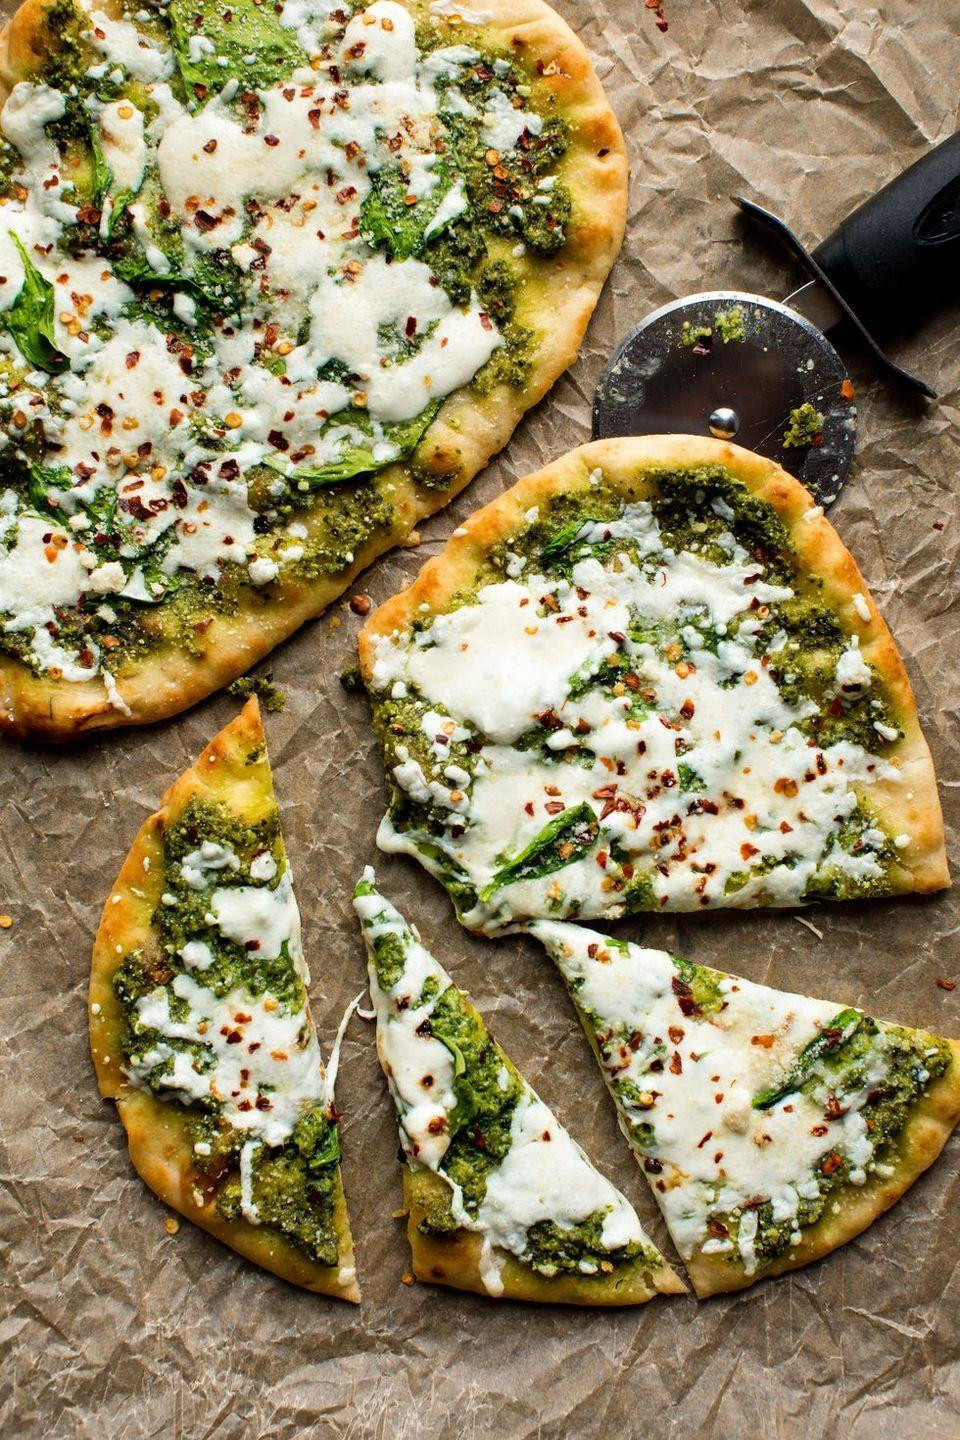 """<p>We use store-bought <a href=""""https://www.delish.com/uk/cooking/recipes/a29455921/naan-bread/"""" rel=""""nofollow noopener"""" target=""""_blank"""" data-ylk=""""slk:naan"""" class=""""link rapid-noclick-resp"""">naan</a> to make a super quick meal. Top with pesto and mozzarella with a little shake of chilli flakes to heat things up!</p><p>Get the <a href=""""https://www.delish.com/uk/cooking/recipes/a32996329/cheesy-spinach-pesto-flatbread-recipe/"""" rel=""""nofollow noopener"""" target=""""_blank"""" data-ylk=""""slk:Cheesy Spinach Pesto Flatbread"""" class=""""link rapid-noclick-resp"""">Cheesy Spinach Pesto Flatbread</a> recipe.</p>"""